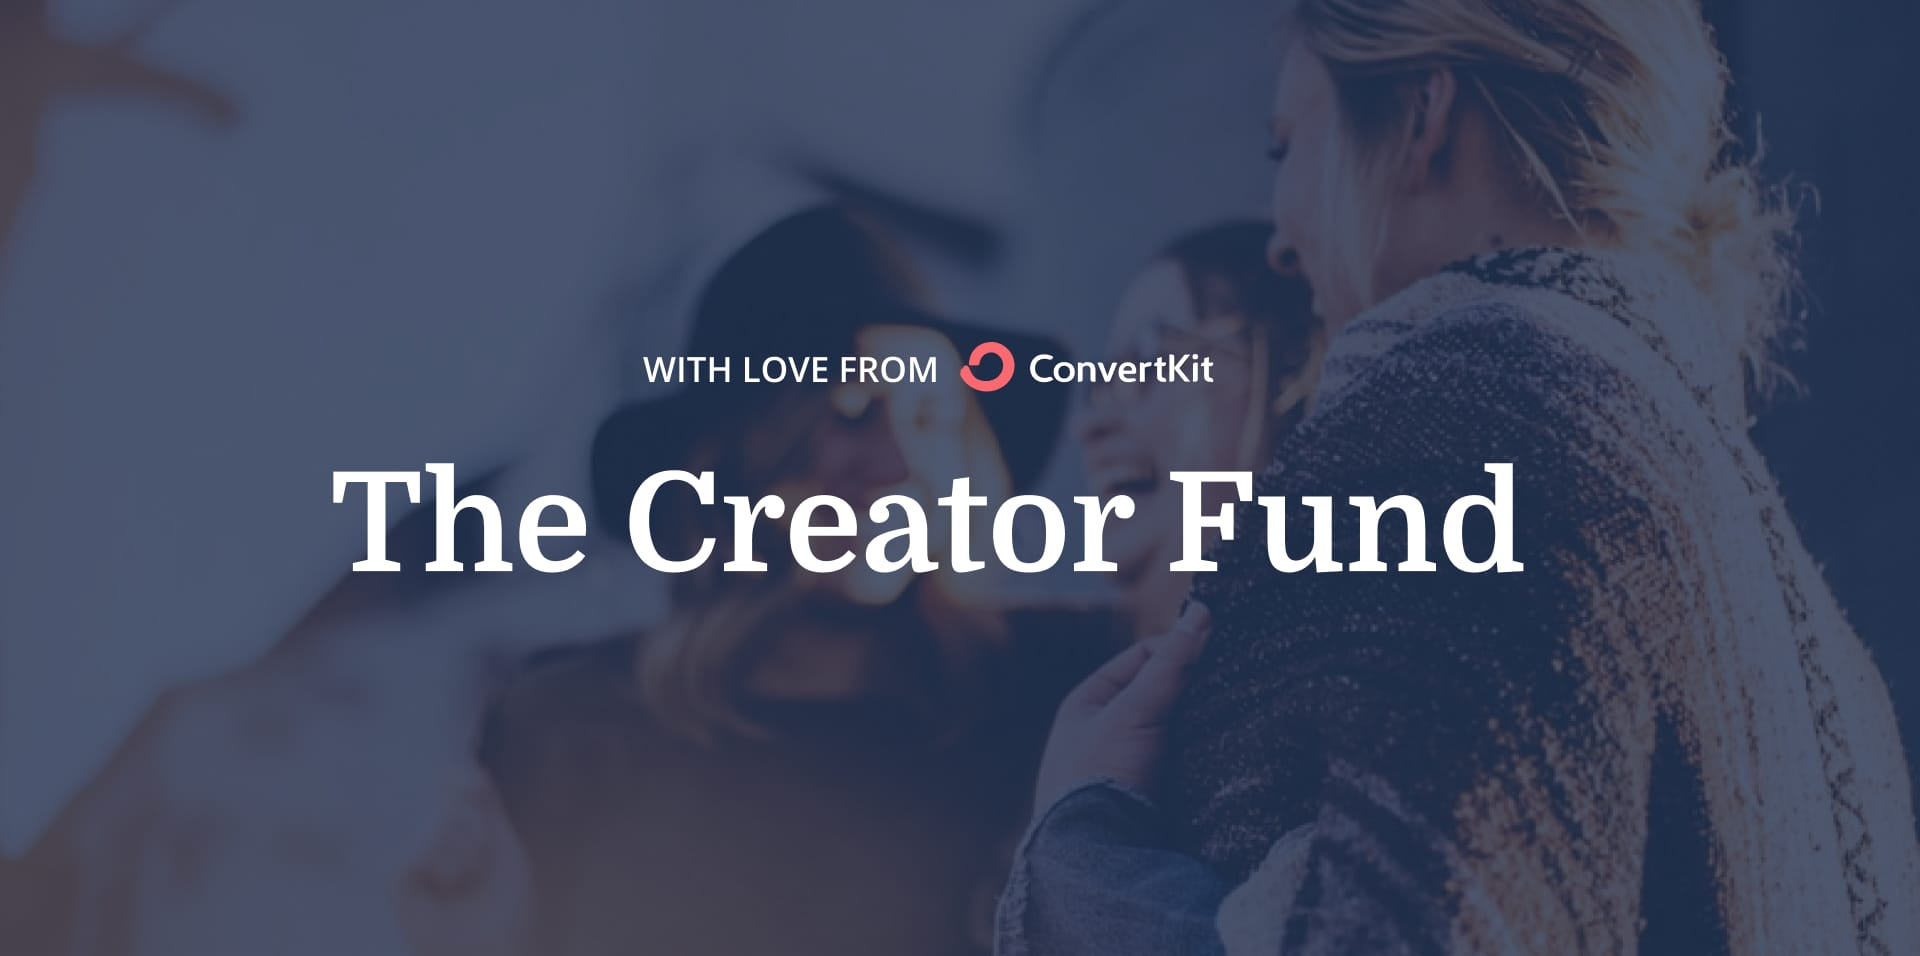 The Creator Fund